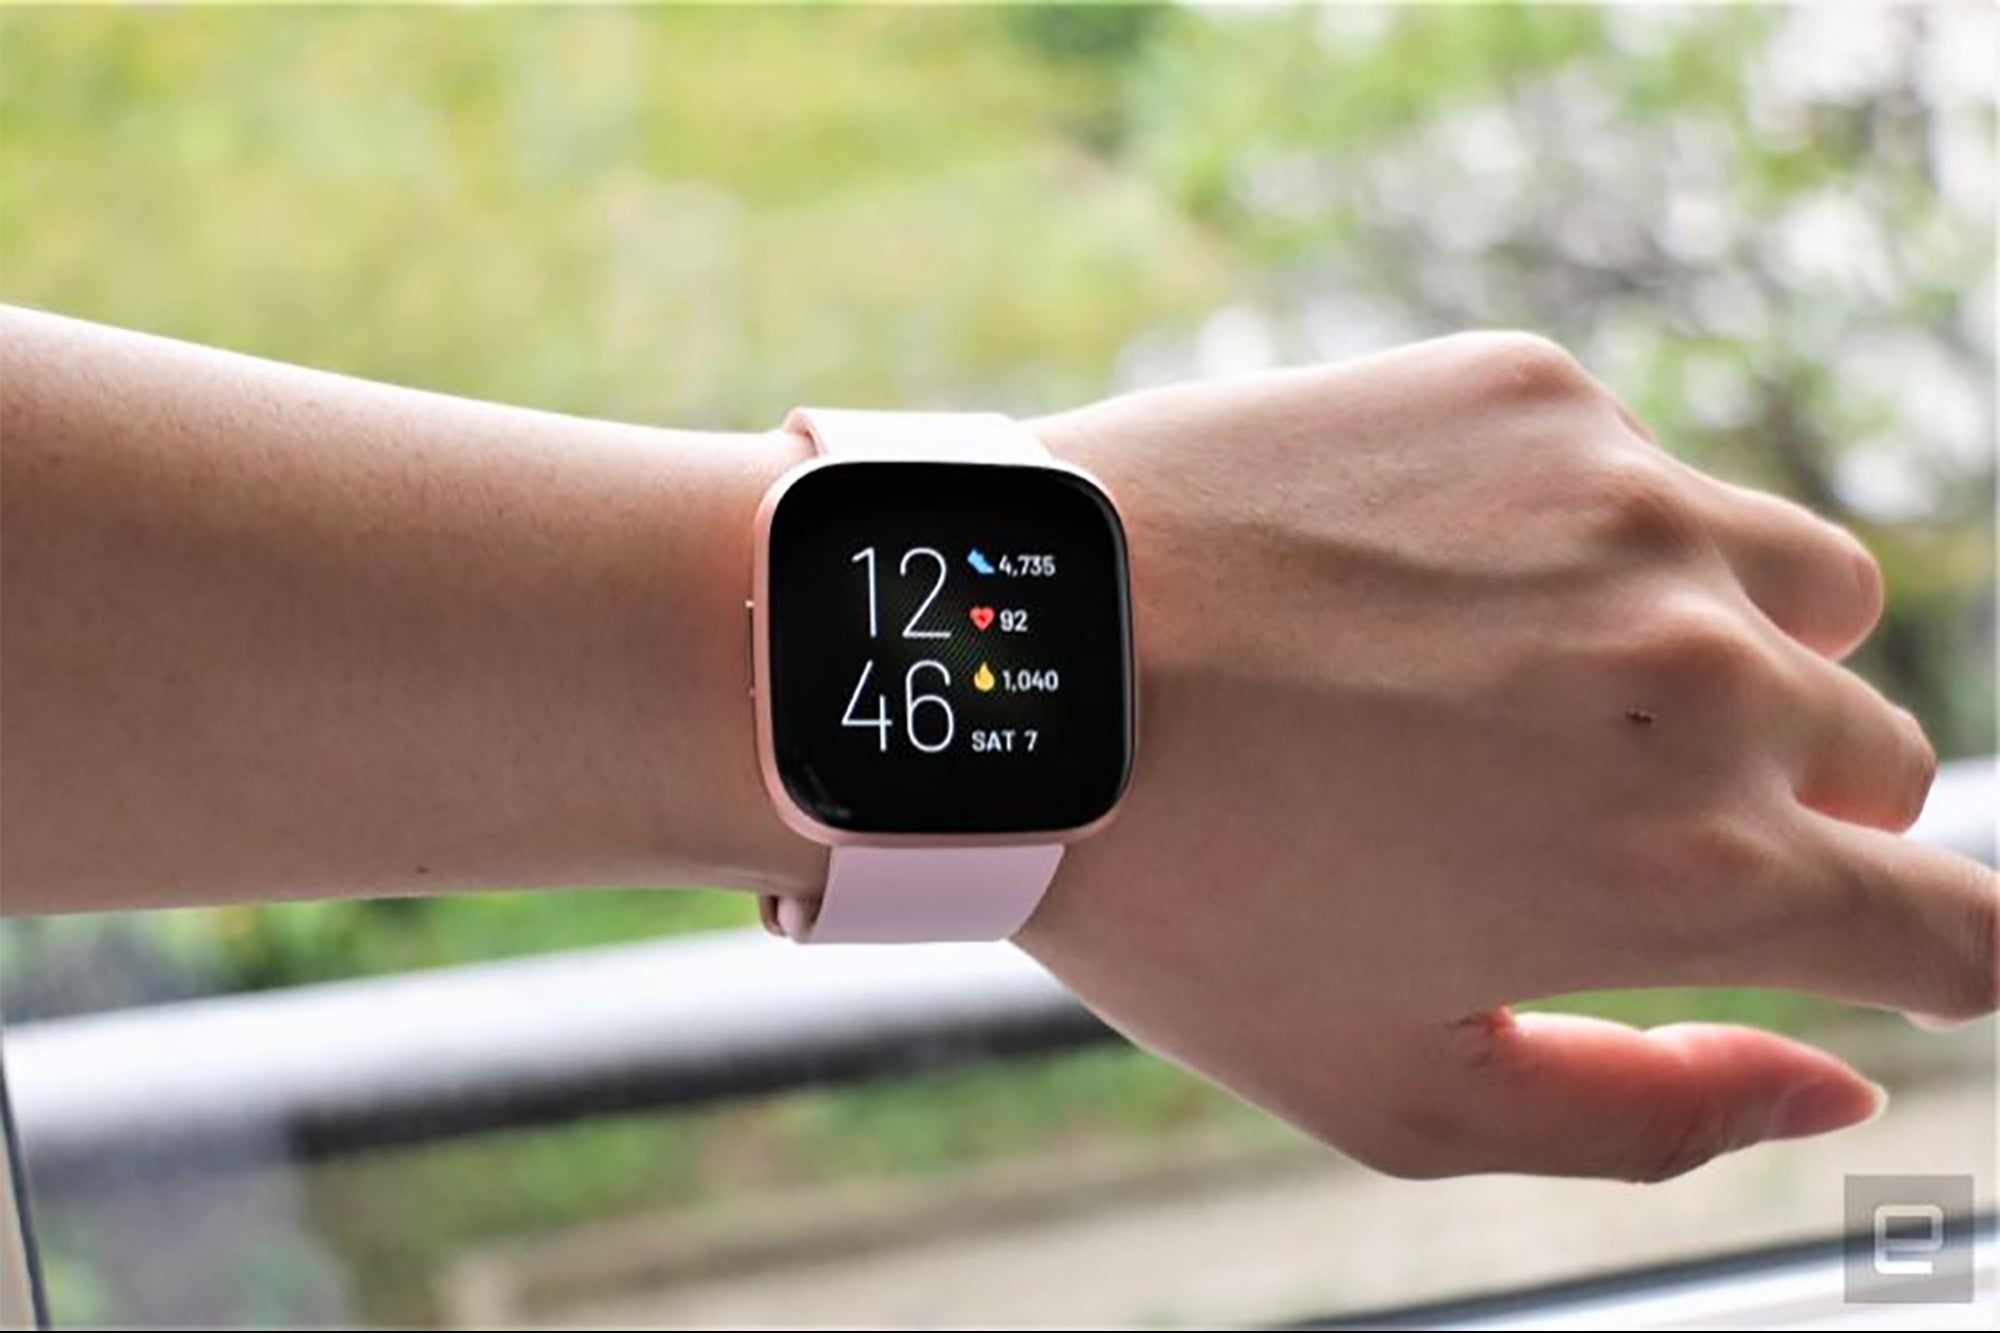 Fitbit's In-App Study Will Determine If Wearables Can Detect COVID-19